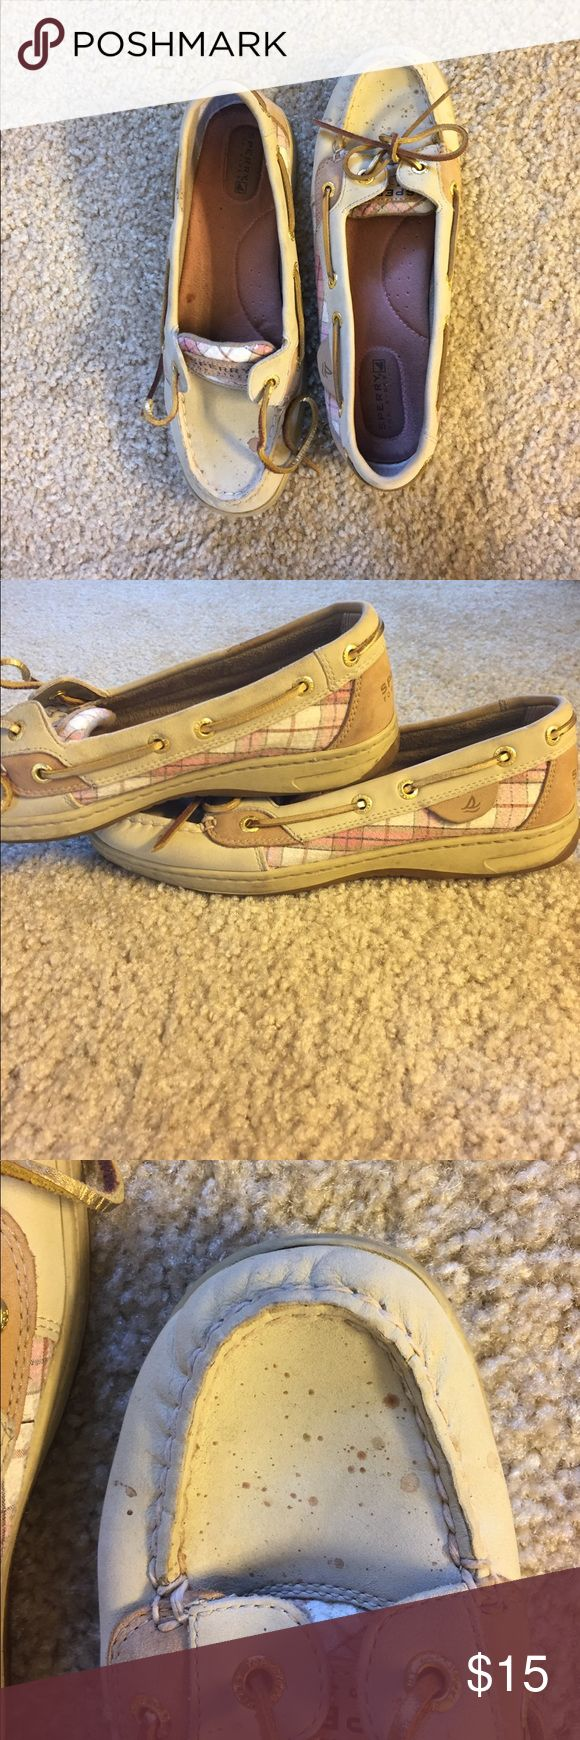 Sperry Top-Sider Pink sequin boat shoe size 8M Tan Sperrys with pink sequin tongue and sides. Gold laces. Splatter on the front of each shoe, could probably be cleaned up with leather cleaner. Normal wear and tear. Sperry Top-Sider Shoes Flats & Loafers